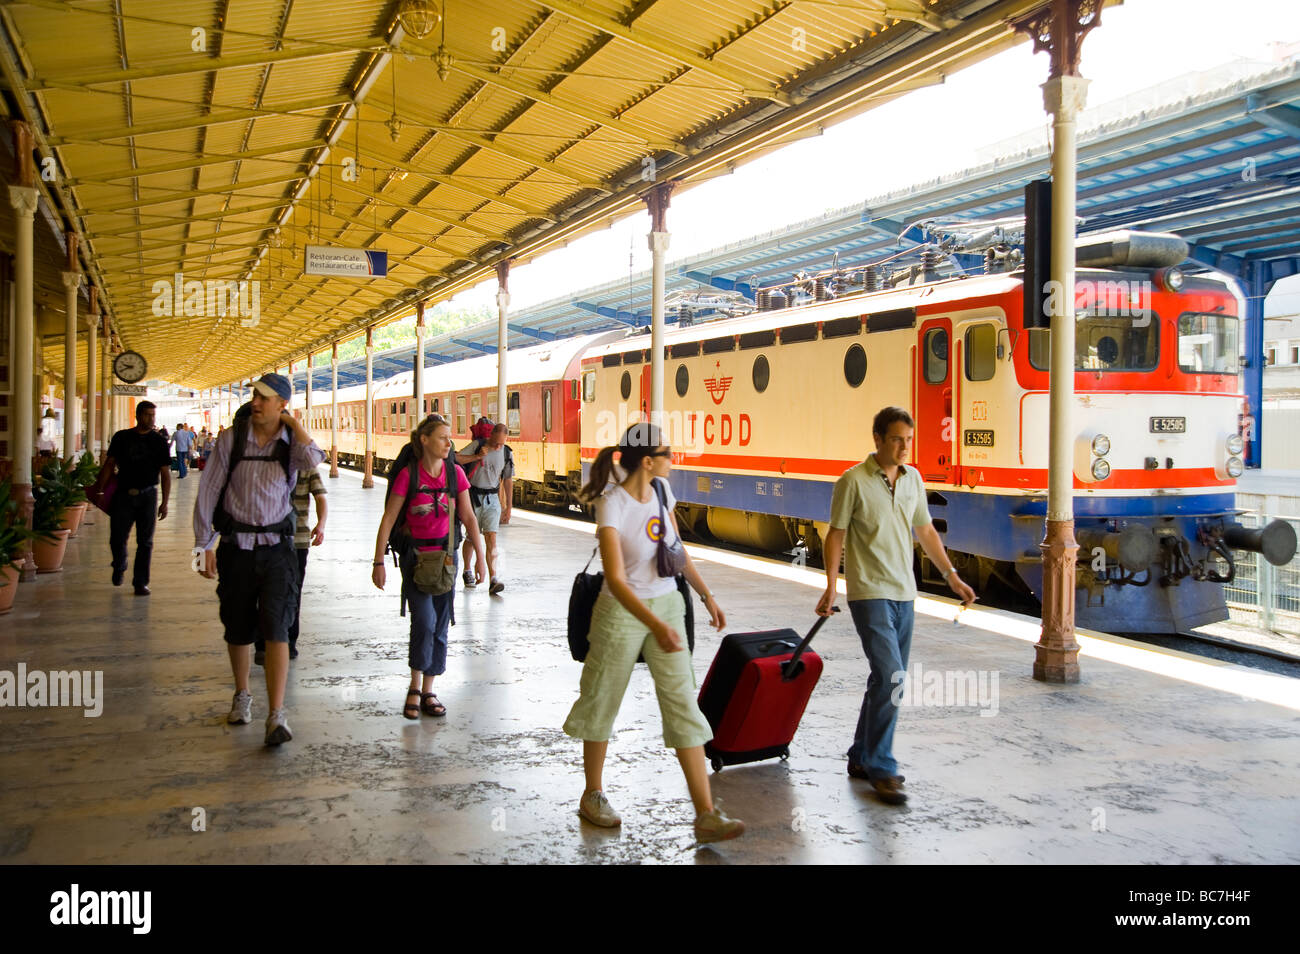 People arriving at Sirkeci Railway Station in Istanbul Turkey - Stock Image